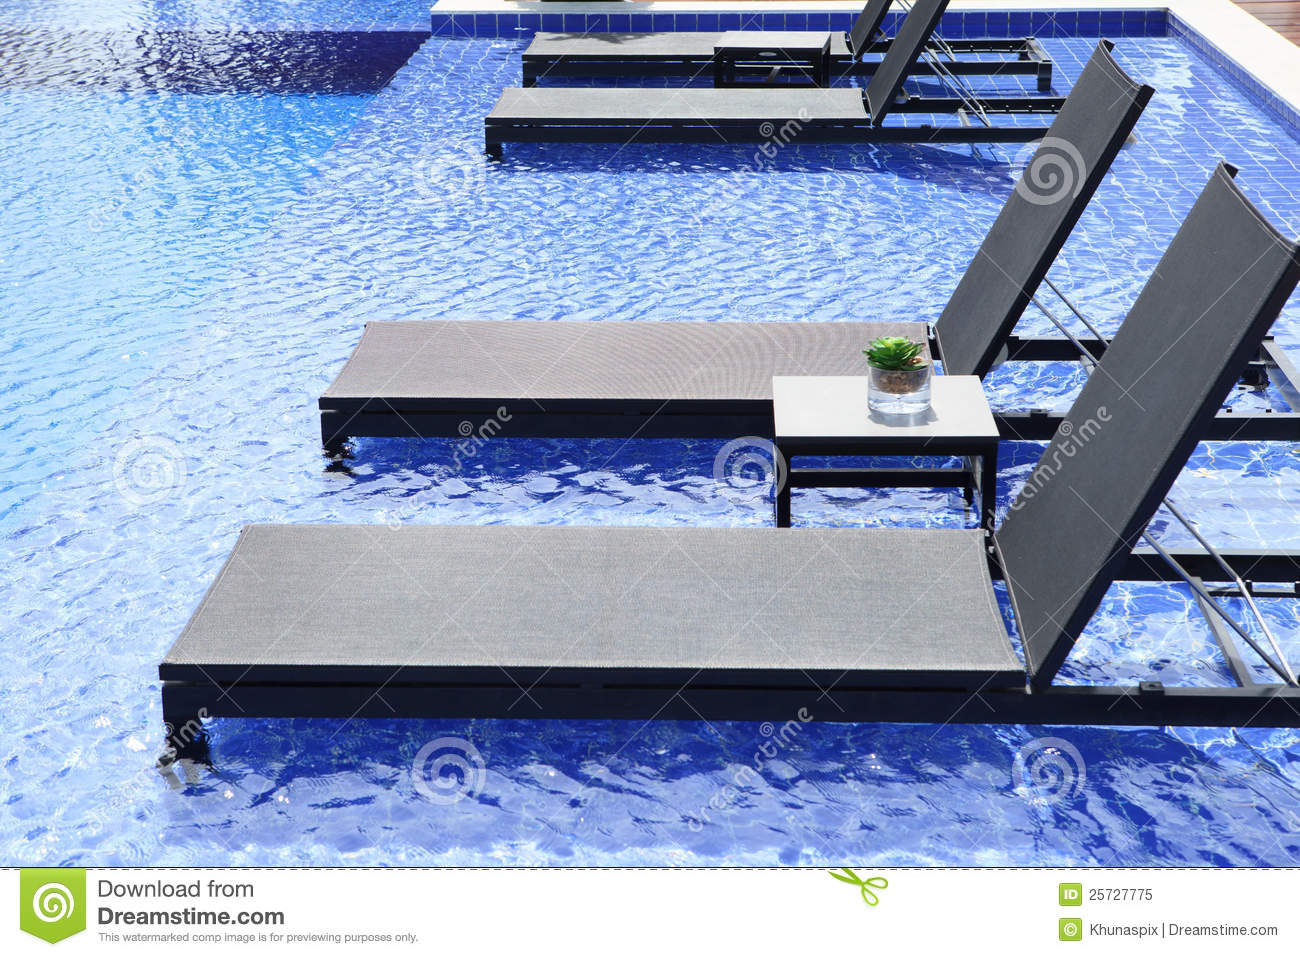 Incroyable Download Swimming Pool And Chairs Bed With Blue Water Stock Image   Image Of  Comfort,